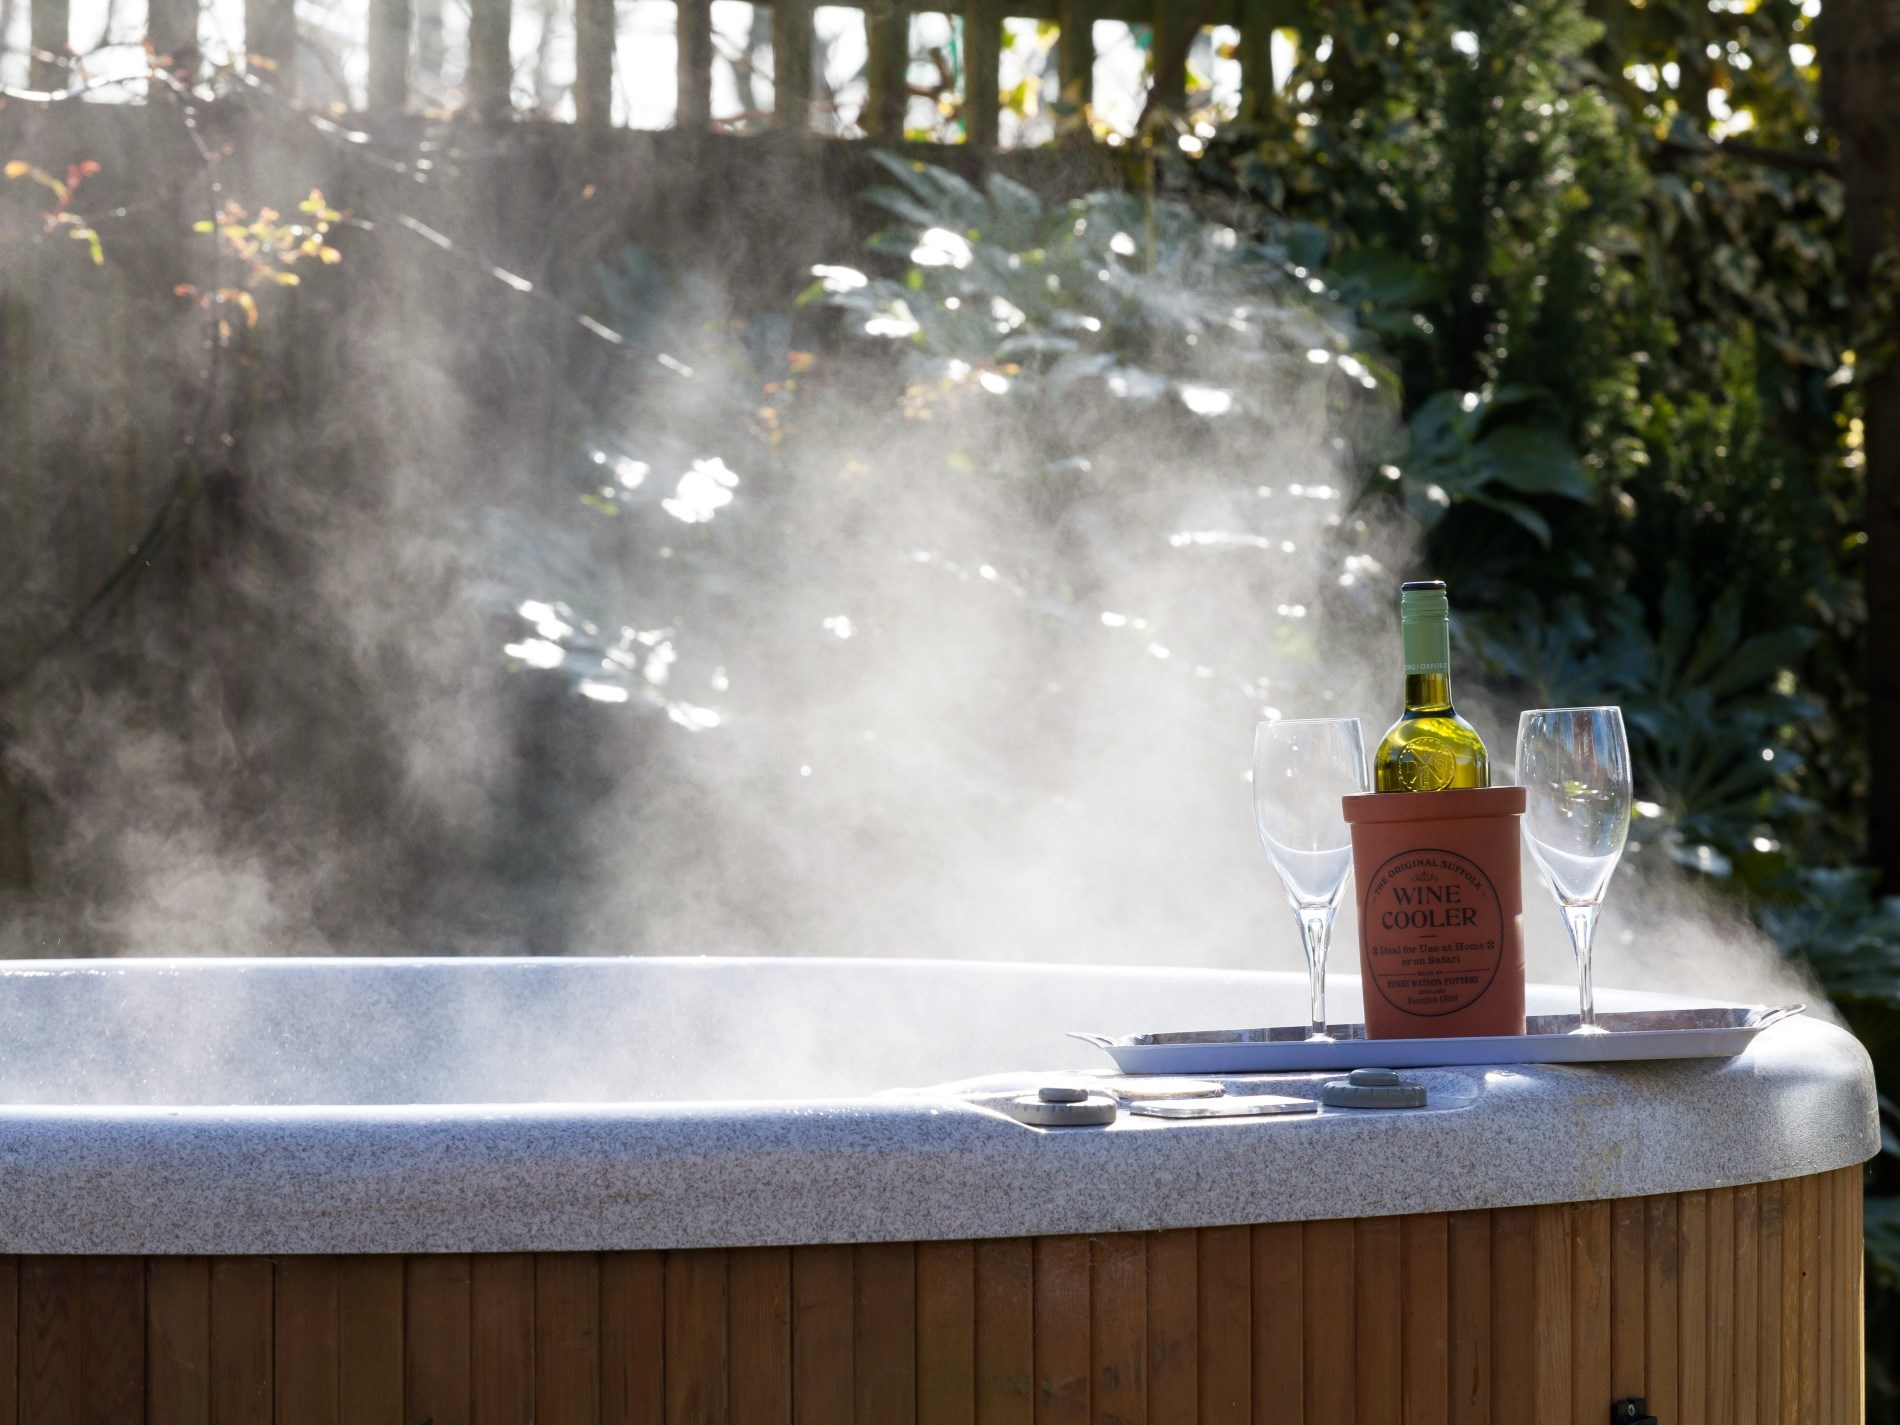 Take a dip in the steamy hot tub